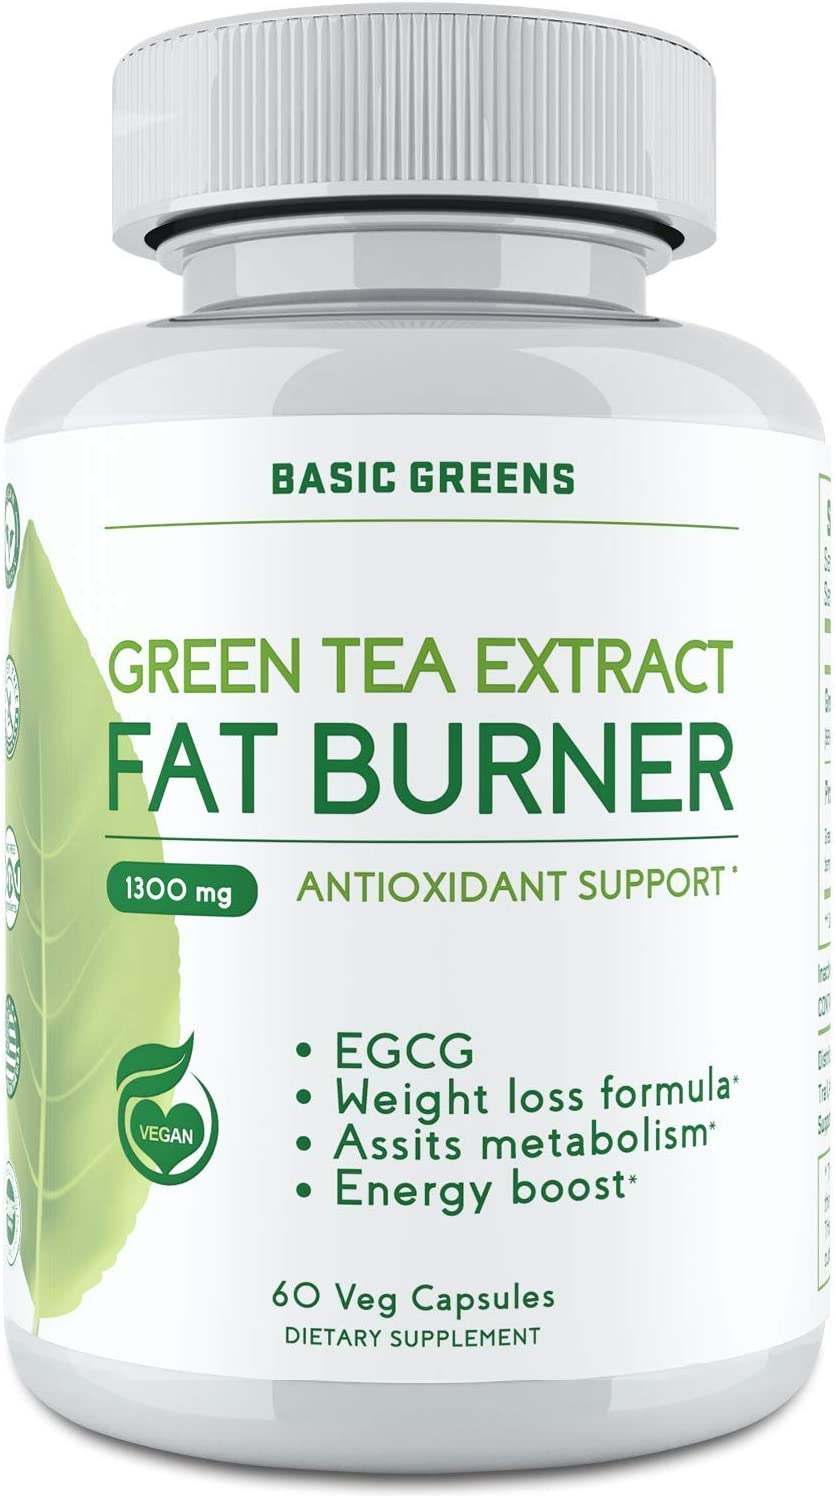 Green Tea Extract Pills for Women & Men - Wite EGCG, Garcinia Cambogia, Green Coffee Bean Energy Support, Antioxidant & Immune Booster Support, for Women & Men- (60 Capsules | 1300mg) by BASIC GREENS: Health & Personal Care